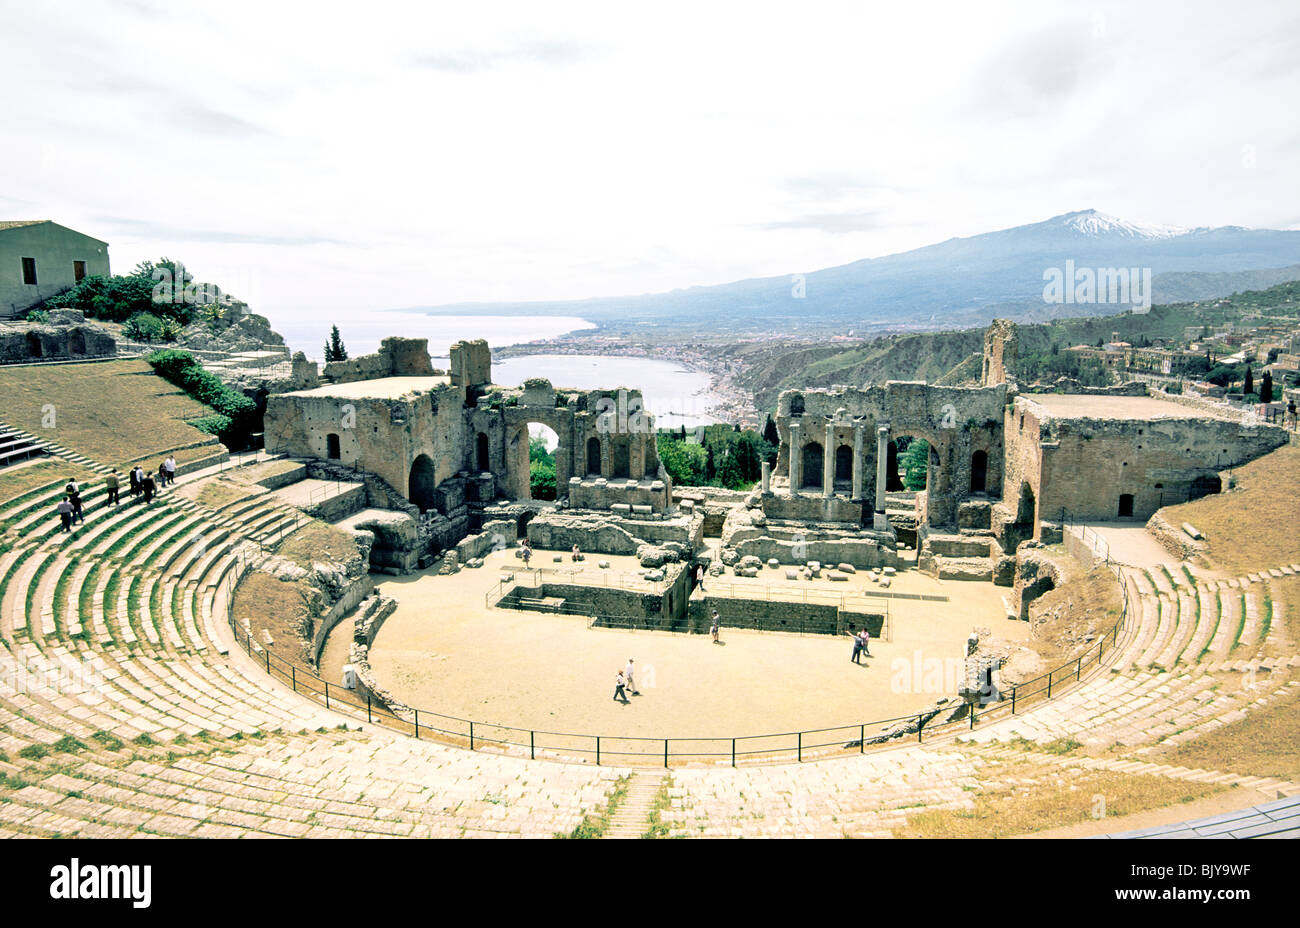 Ancient Greek Theatre Stock Photos & Ancient Greek Theatre Stock ...